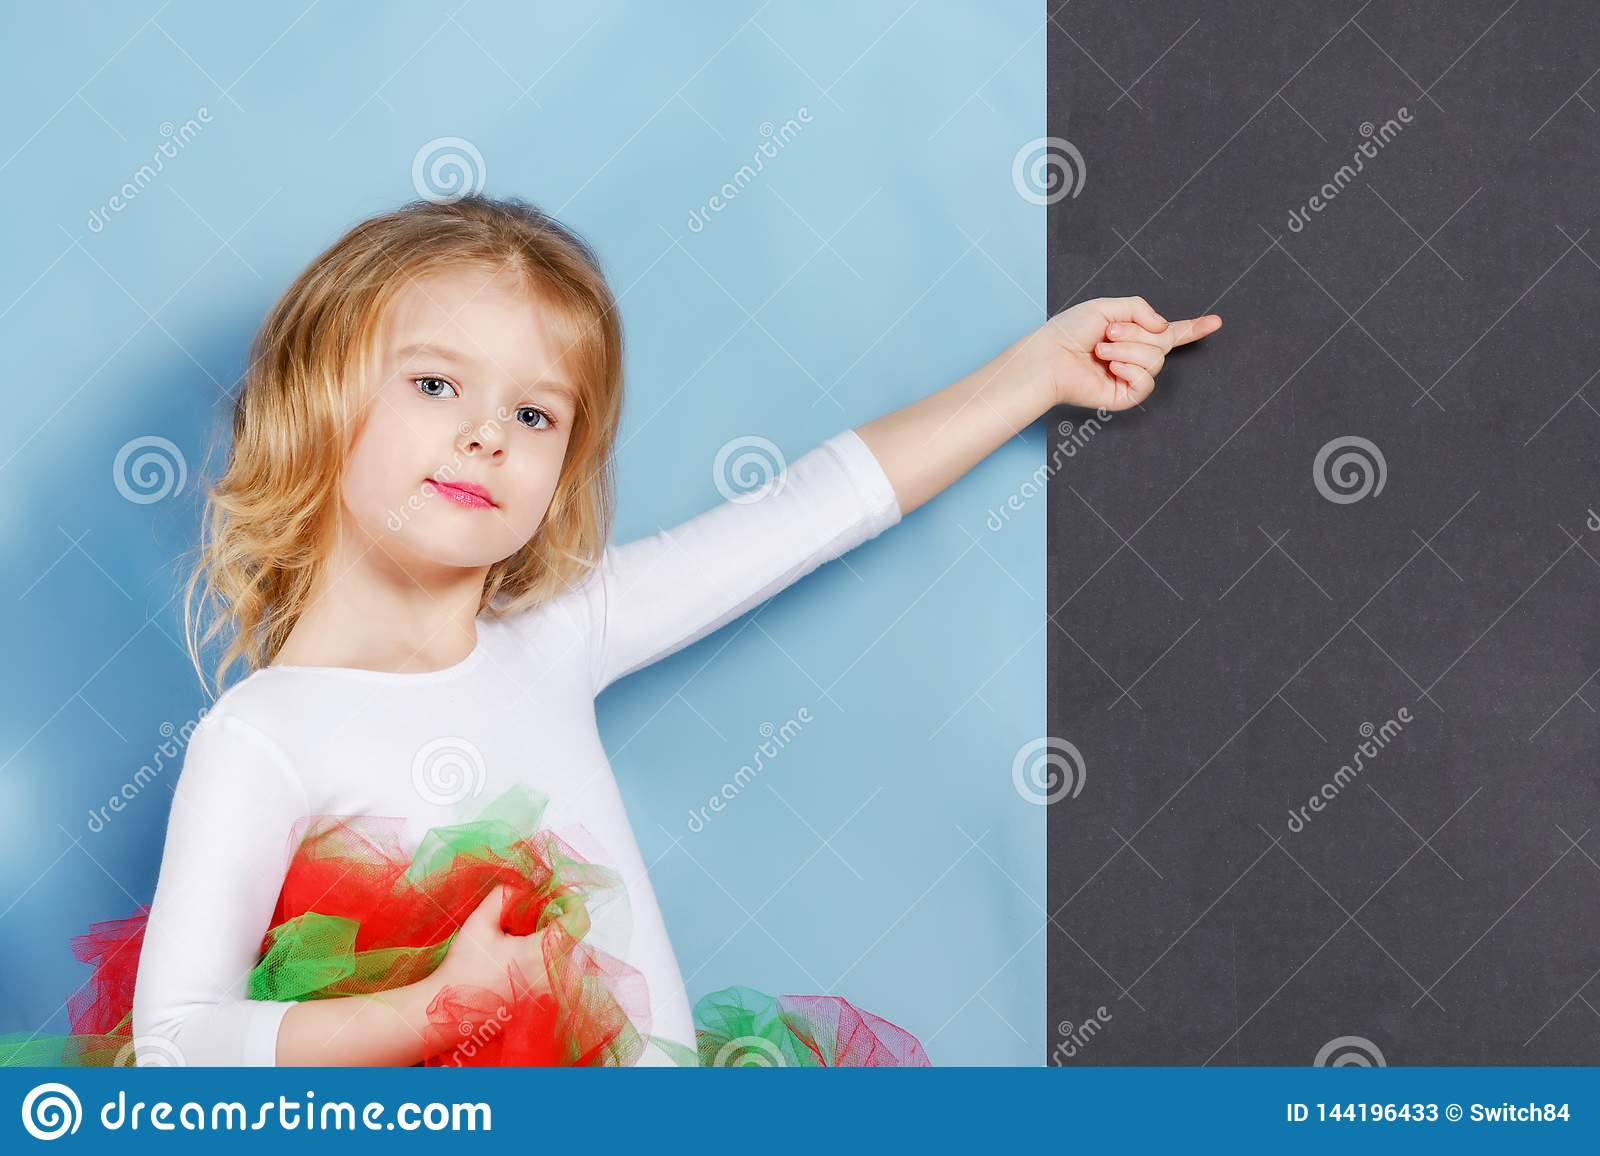 Beautiful cute baby posed. A little girl with blond hair points her finger at a blank space on a black background.